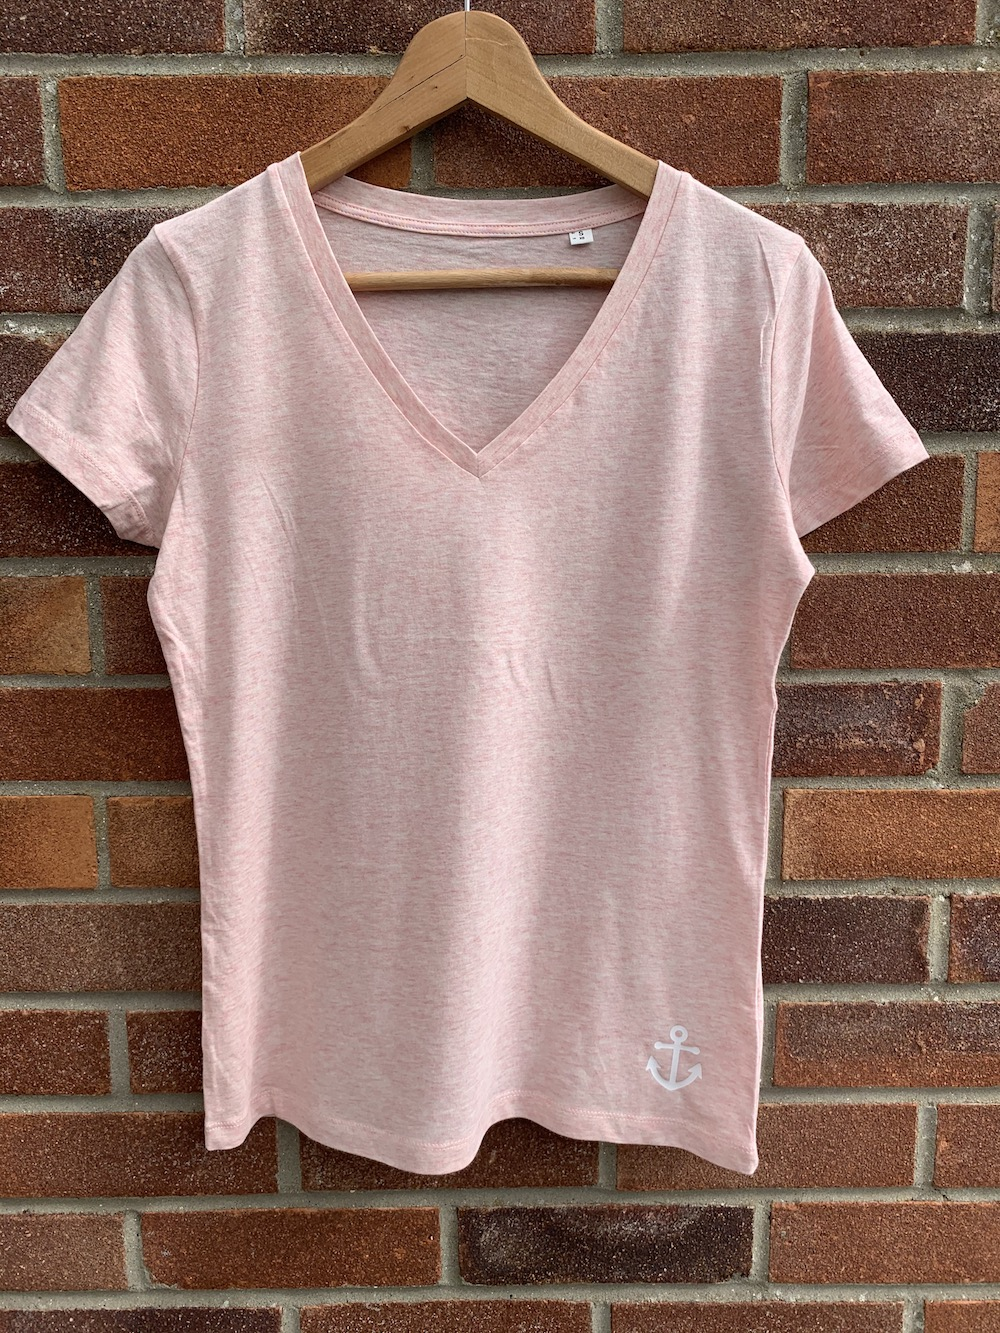 Anchor V Neck Classic Tshirt – Pink And White